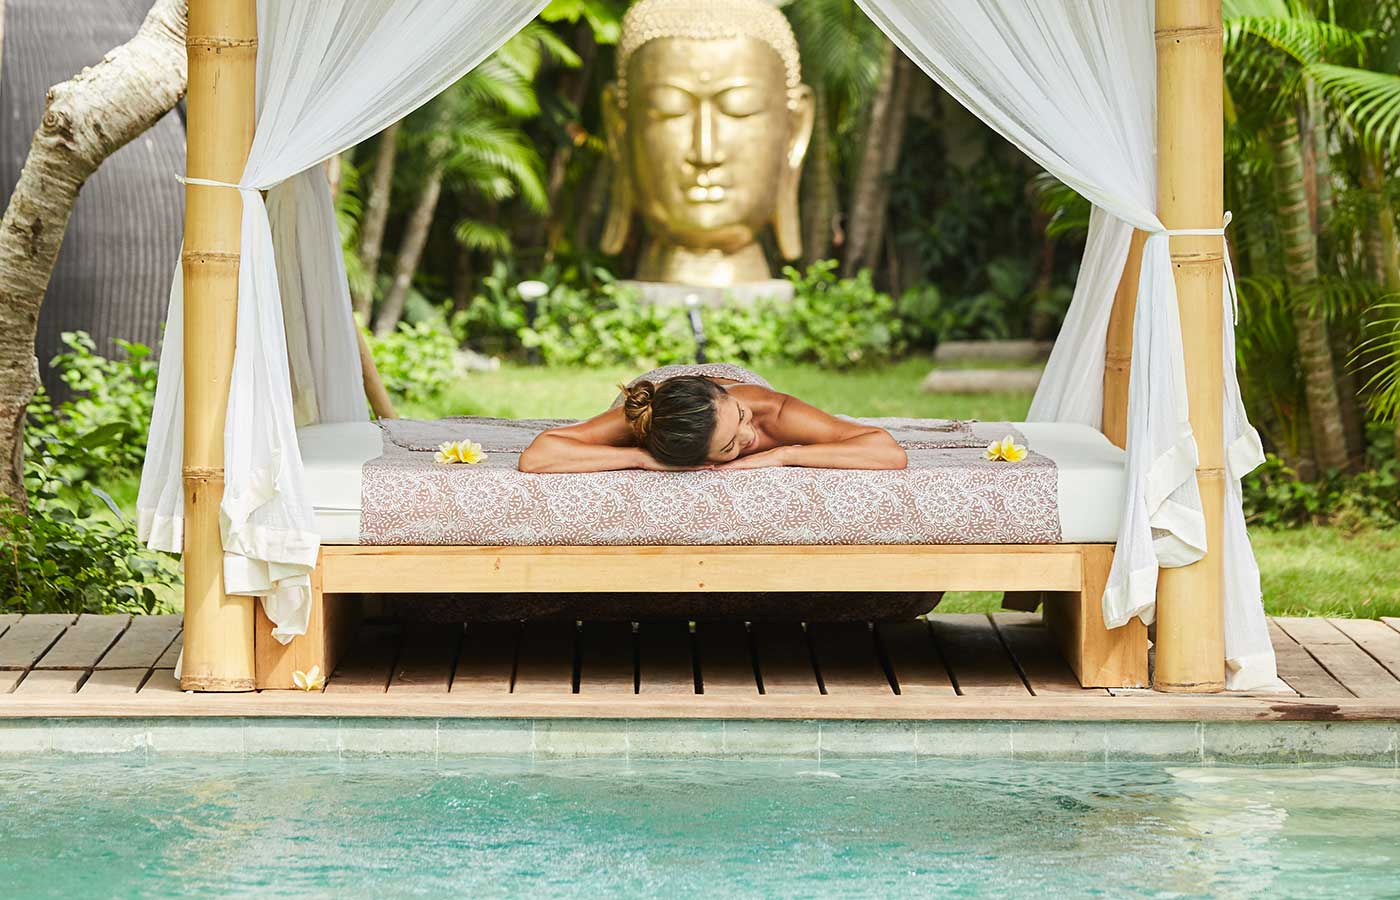 Relaxing by the pool at Bali retreat